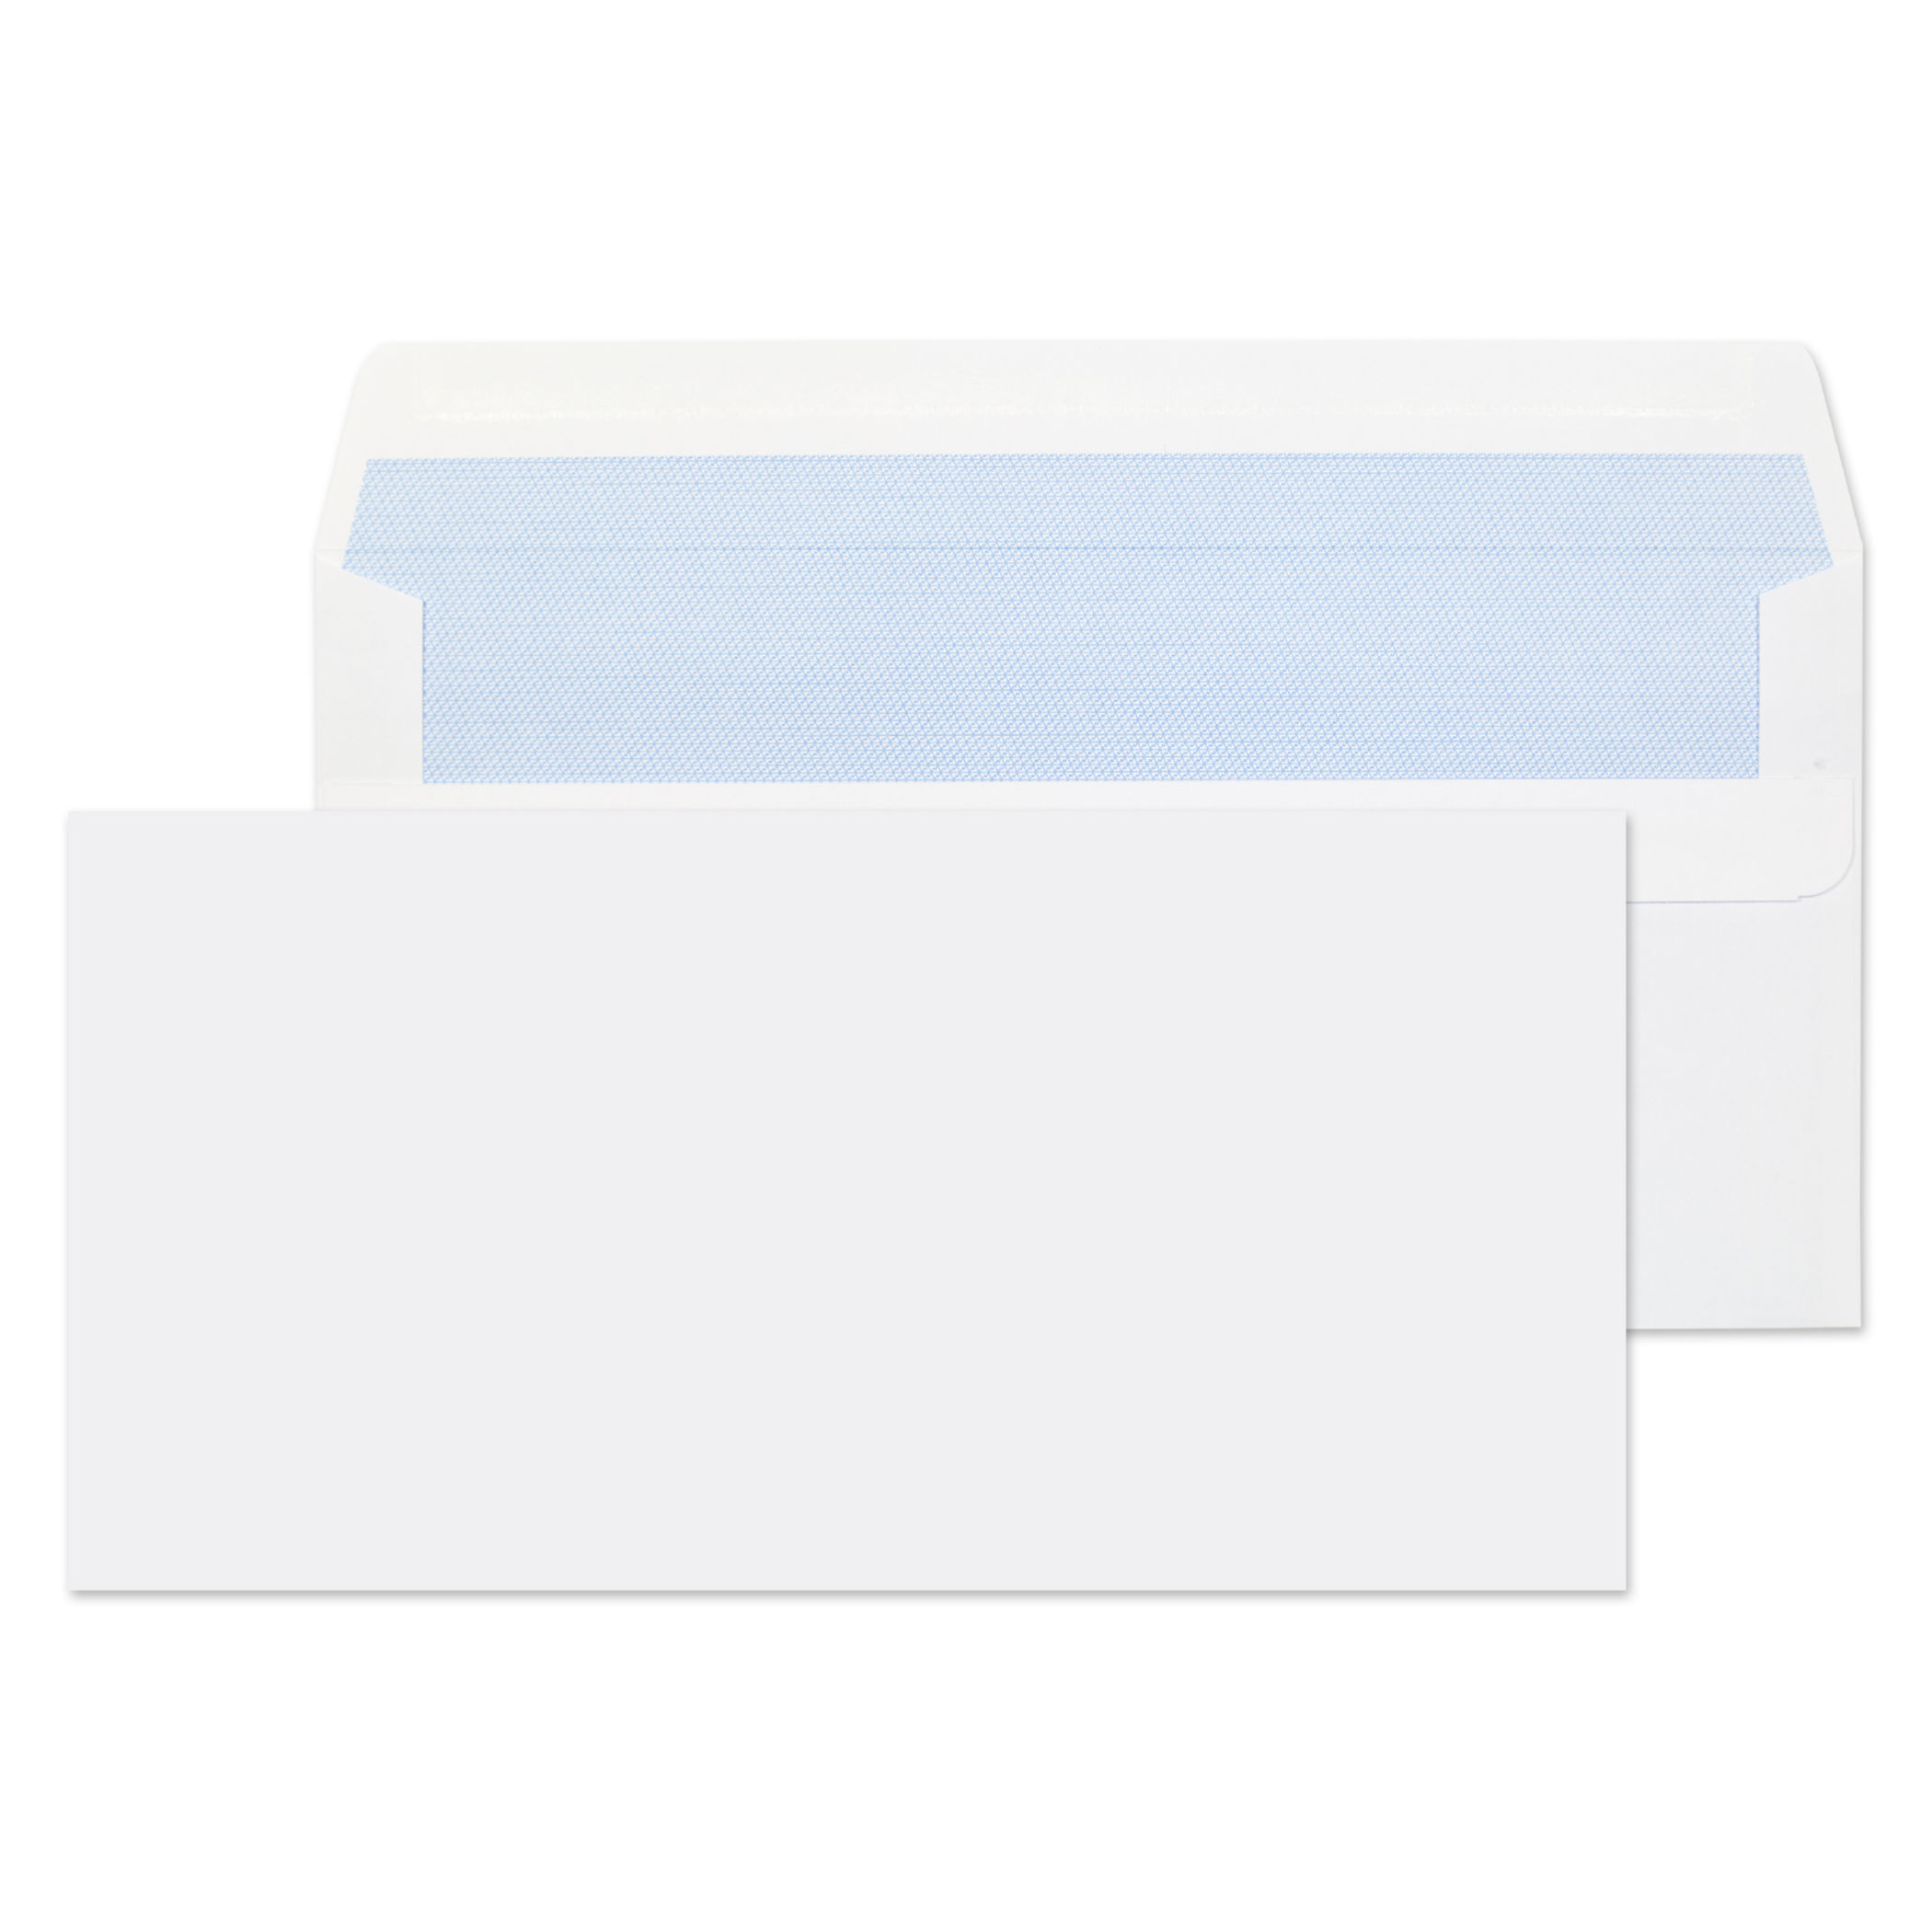 Value Wallet S/S Plain DL 110x220mm 80gsm White PK1000